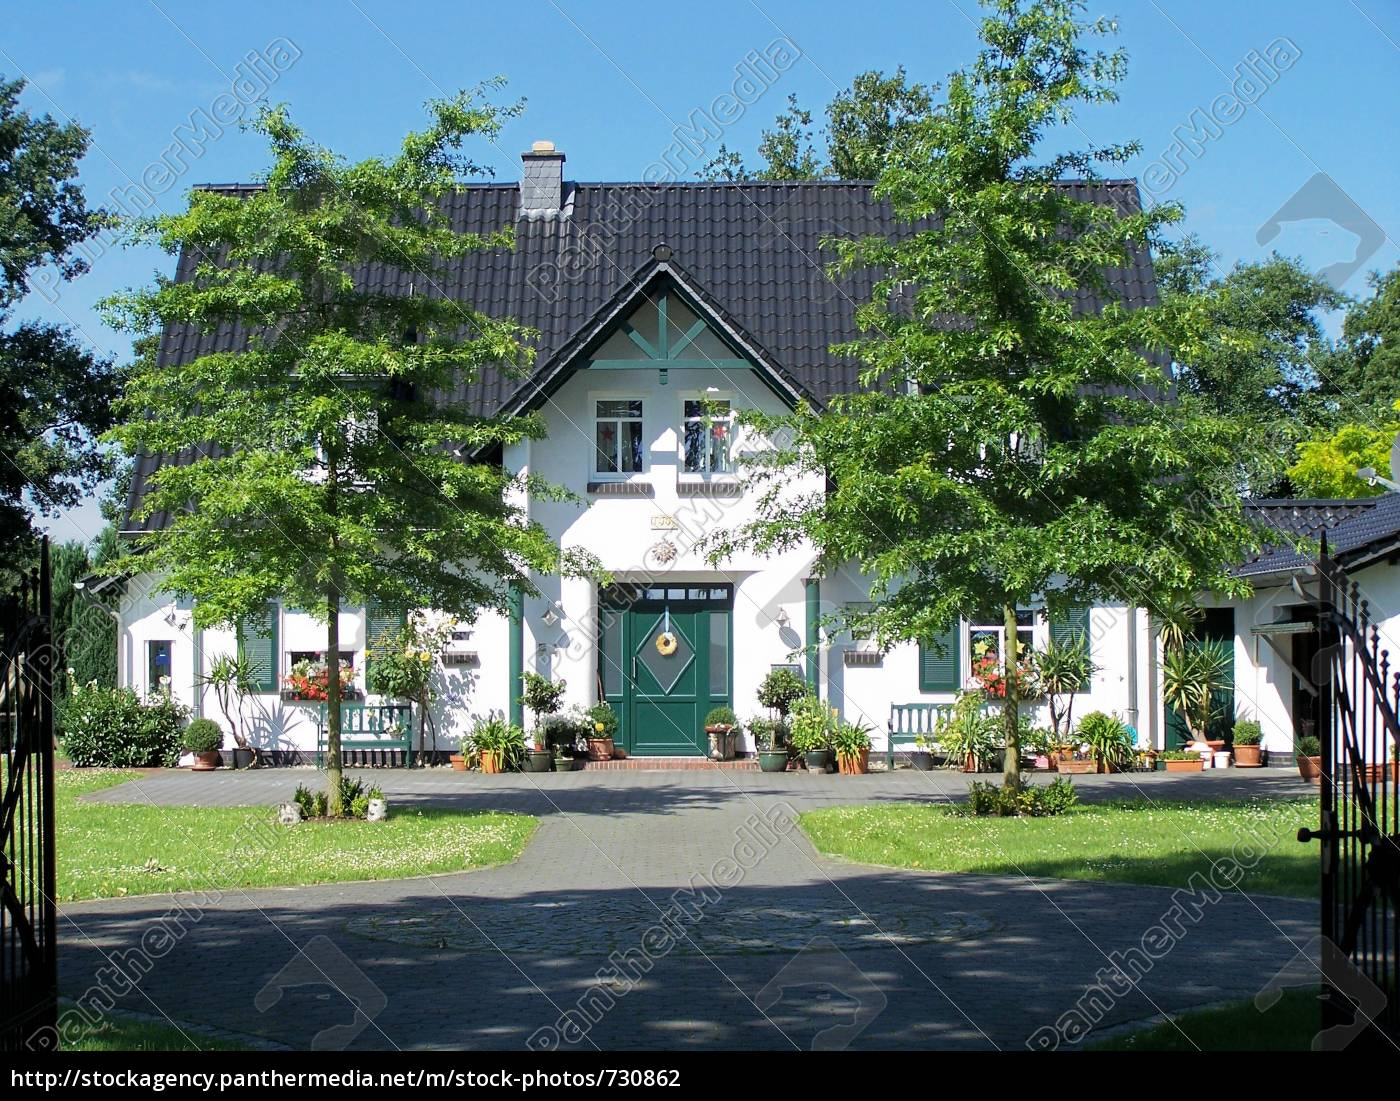 country, house - 730862